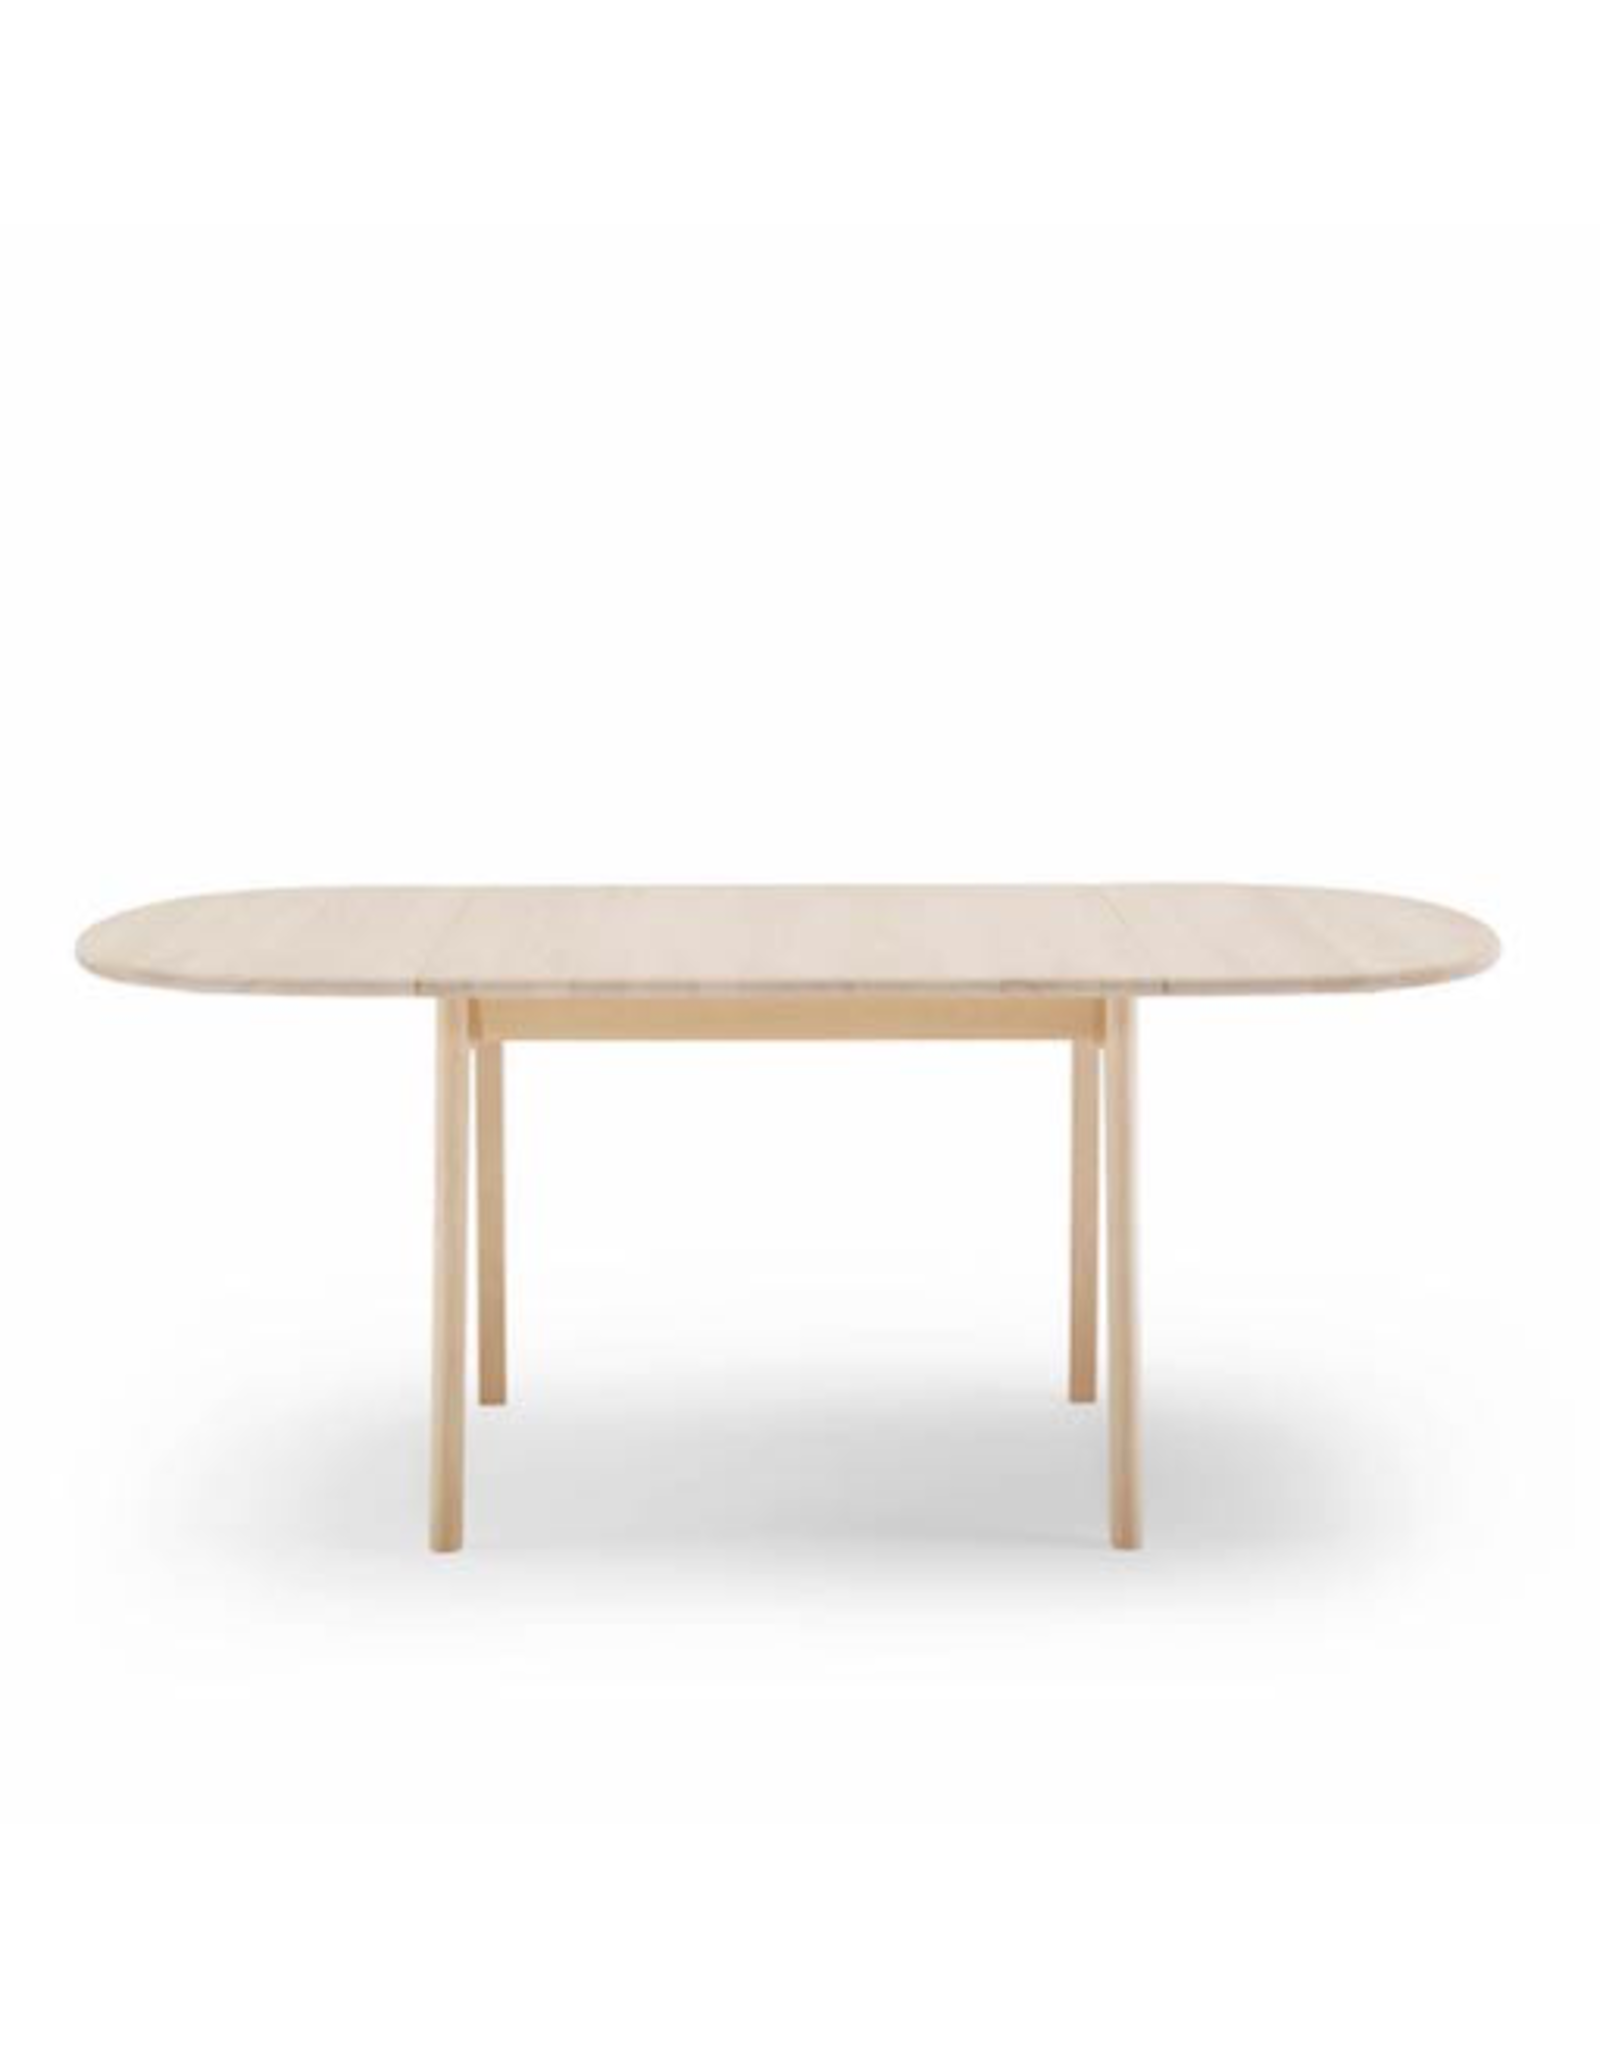 CARL HANSEN & SON CH002 DINING TABLE W/OVAL LEAVES IN SOLID BEECH WOOD